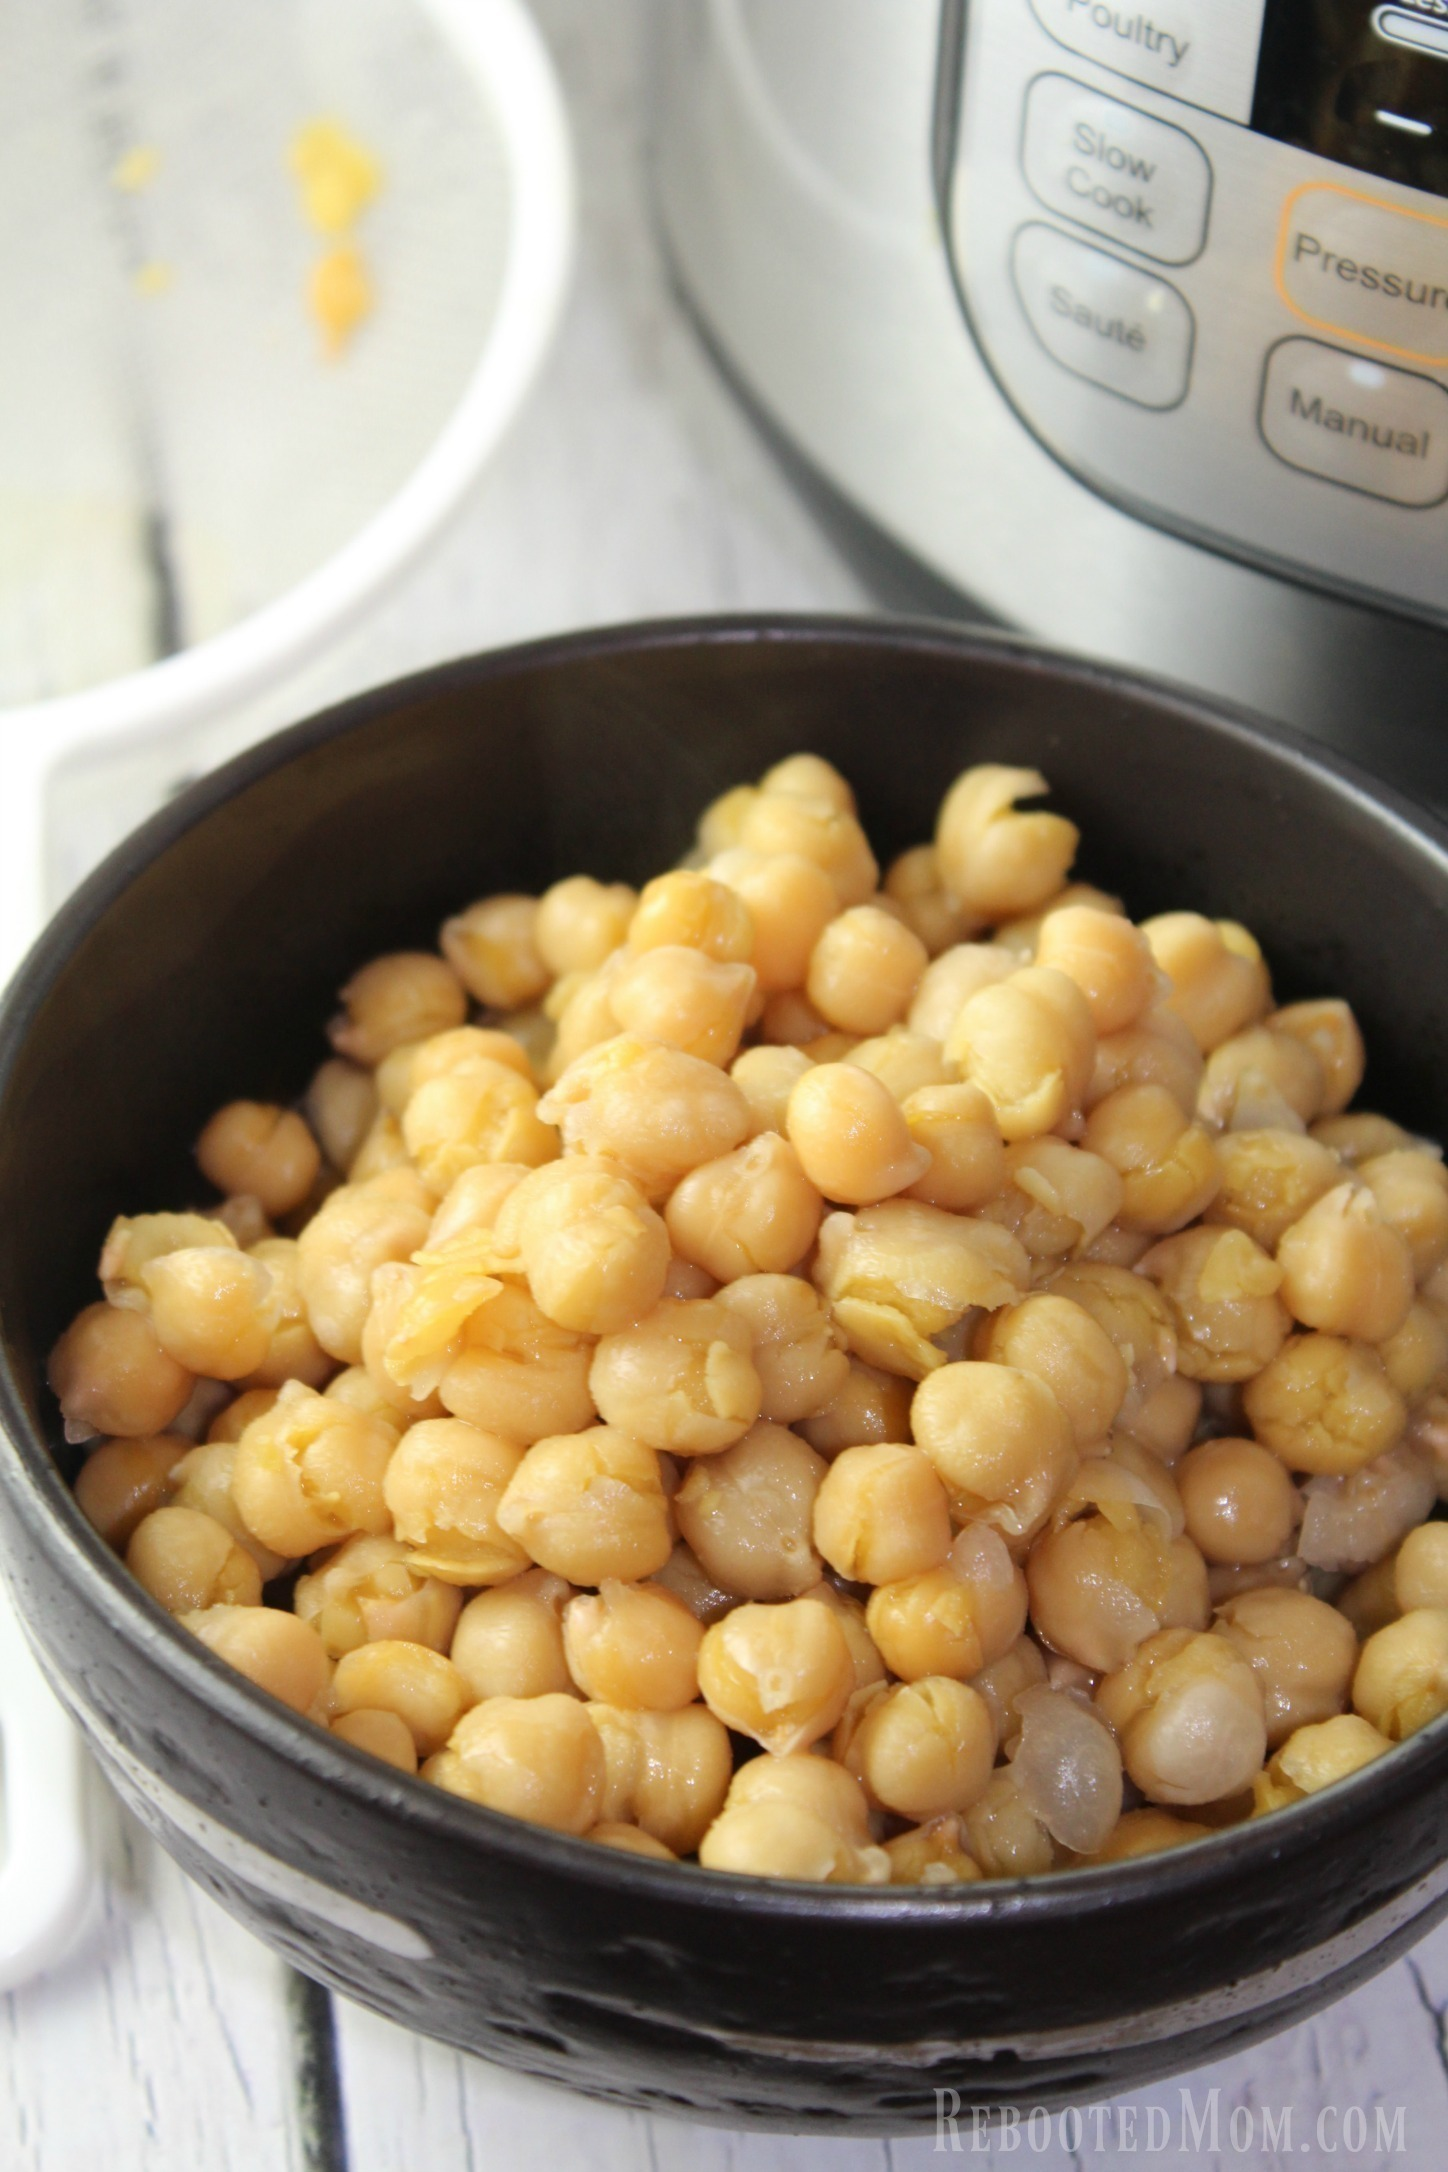 Try cooking chickpeas, or, garbanzo beans, in the Instant Pot or pressure cooker. This no-frills method is quick and easy!